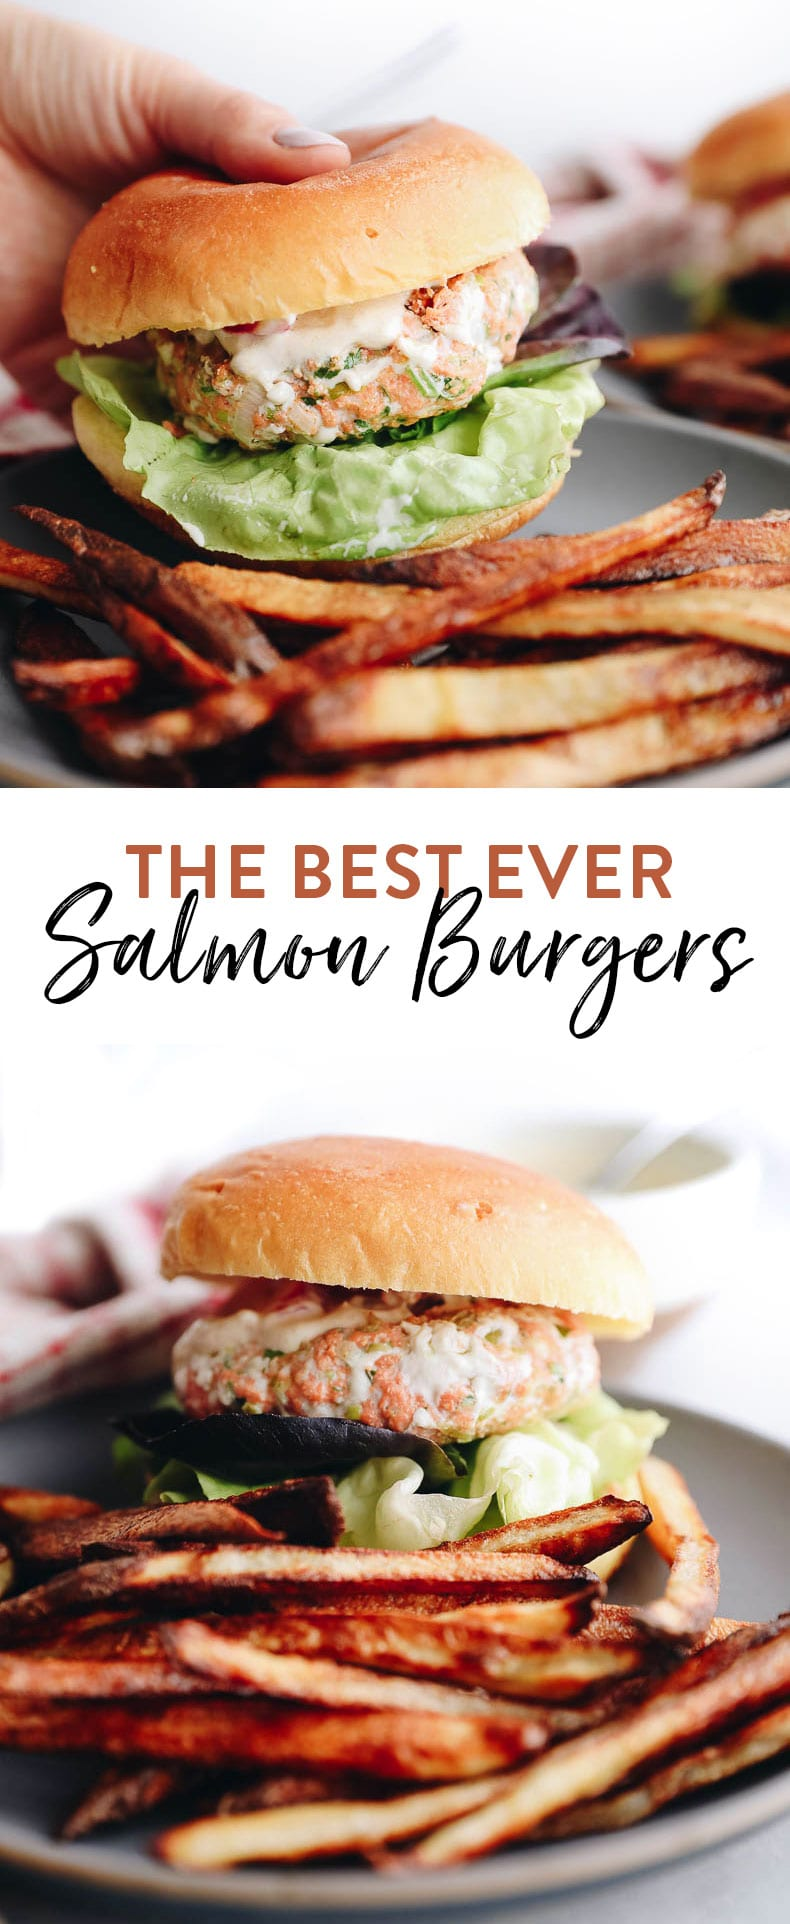 These fresh salmon burgers are surprisingly easy to make and you'll quickly discover with the tangy yogurt sauce that they are the best.salmon.burgers.ever! #30minutedinner